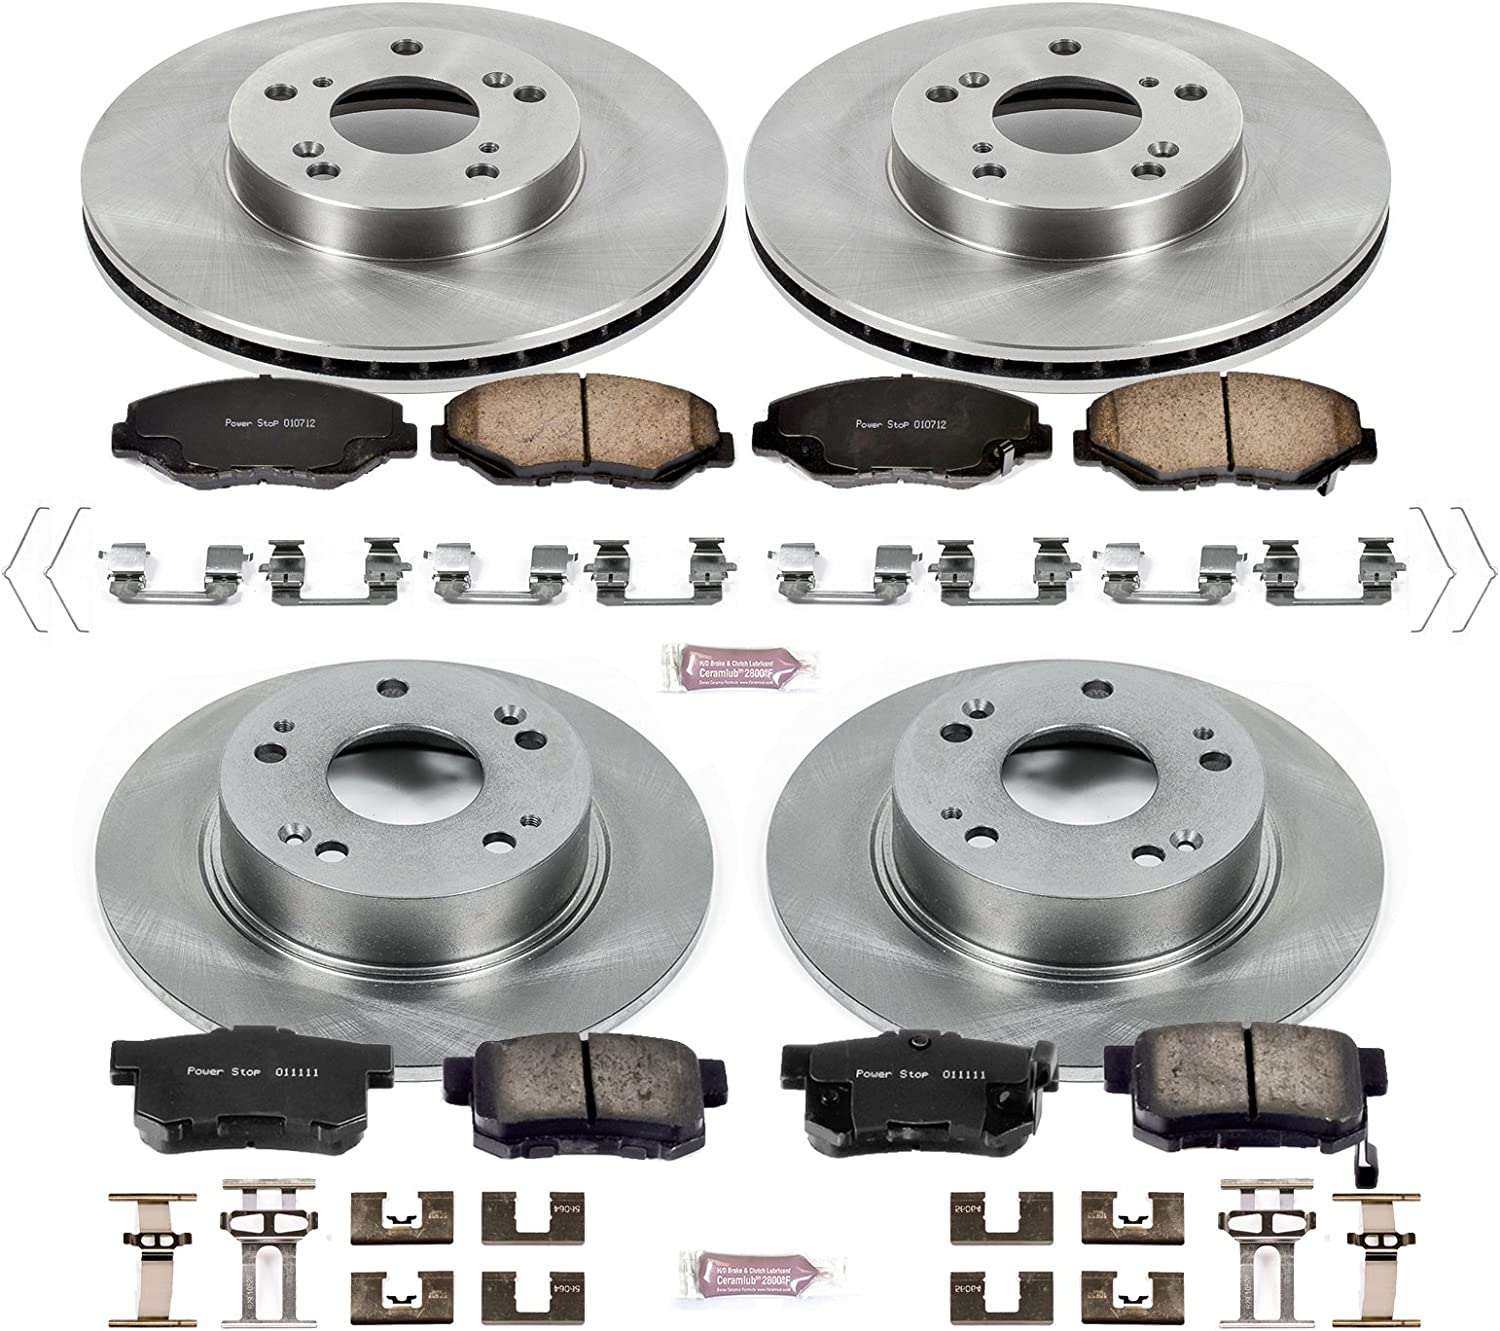 Power Stop KCOE5817B Autospecialty Front Stock Replacement Kit-OE Rotors Ceramic Brake Pads Calipers